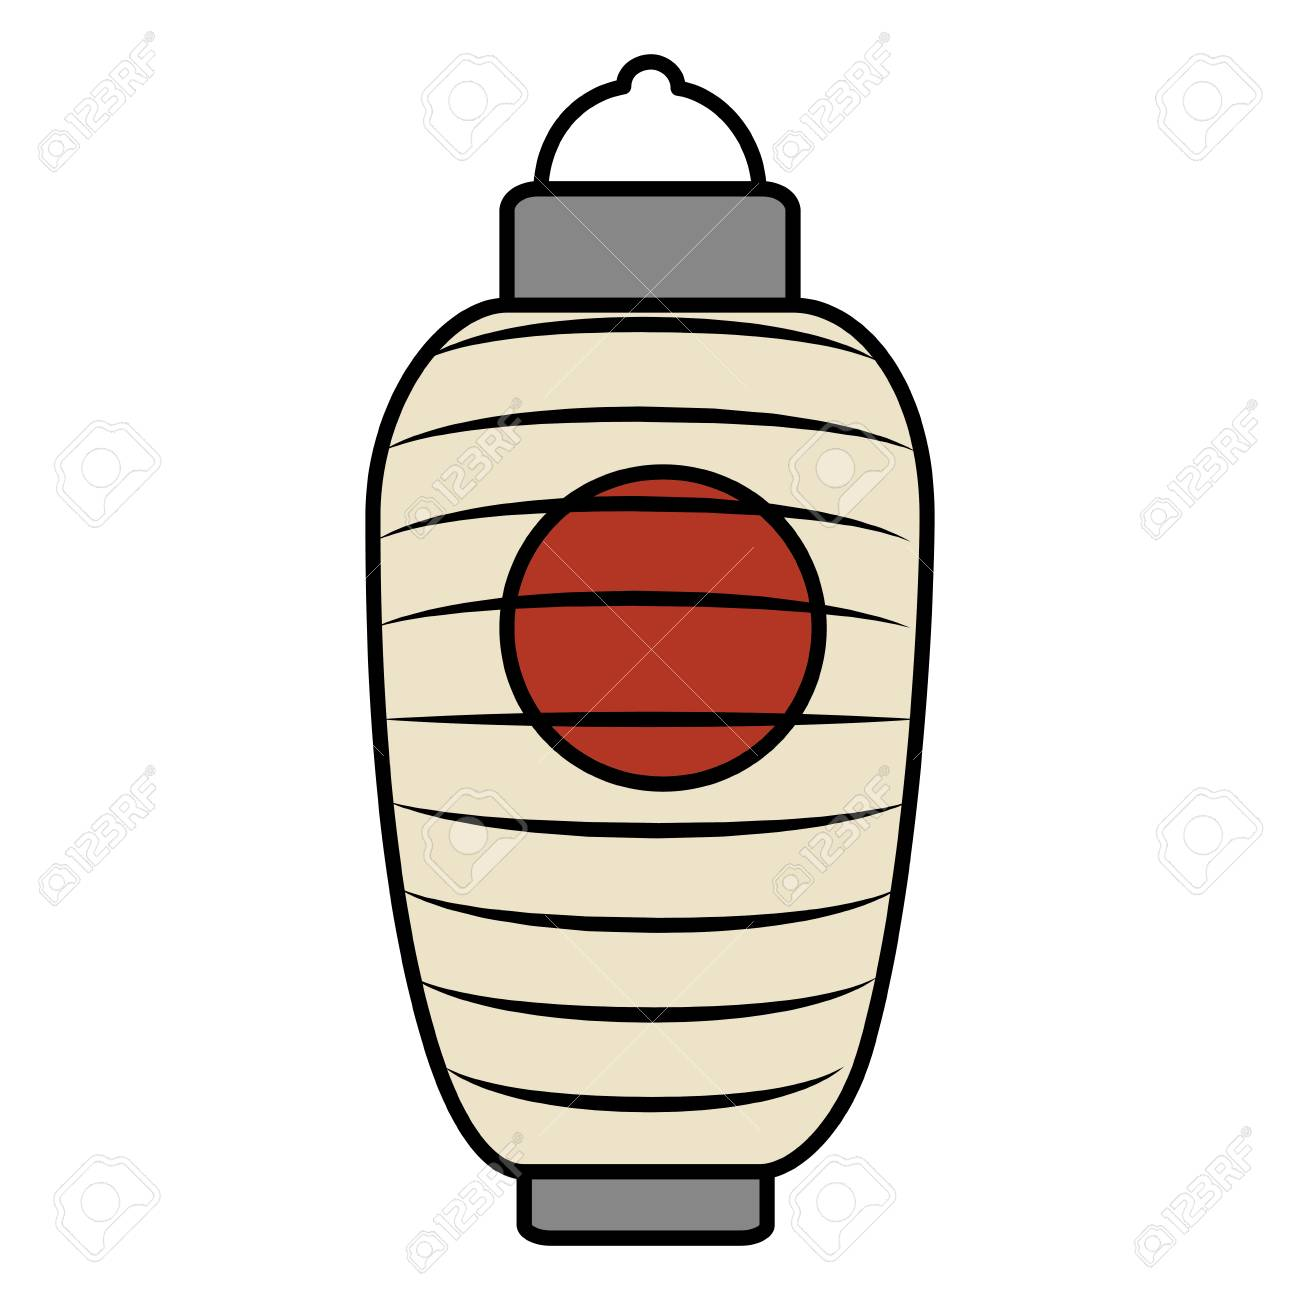 Japanese Lamp Isolated Icon Vector Illustration Design Stock